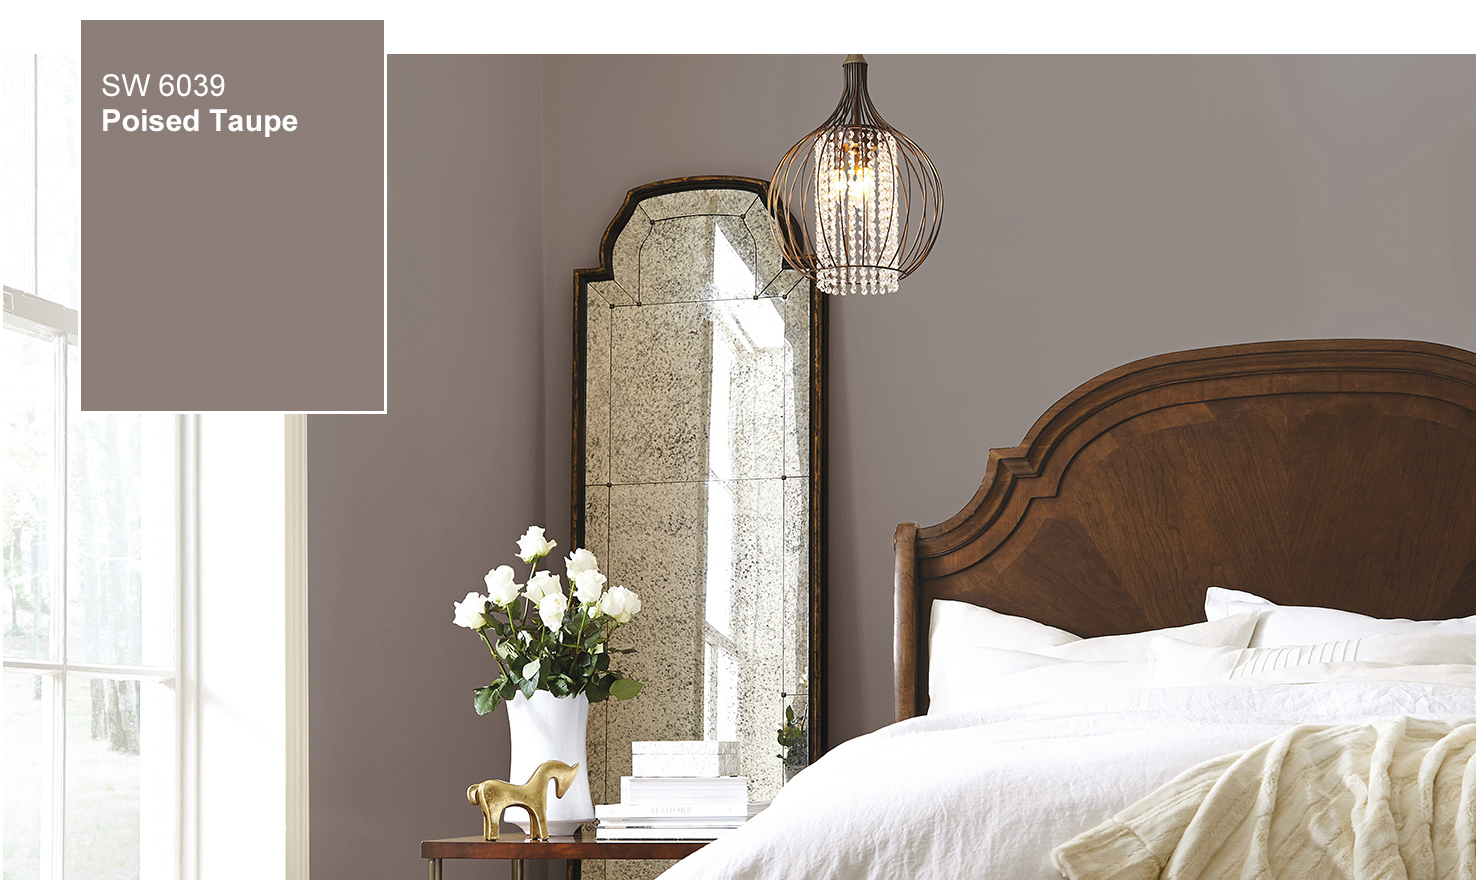 Taupe Paint Color 2017 sherwin-williams color of the year - poised taupe